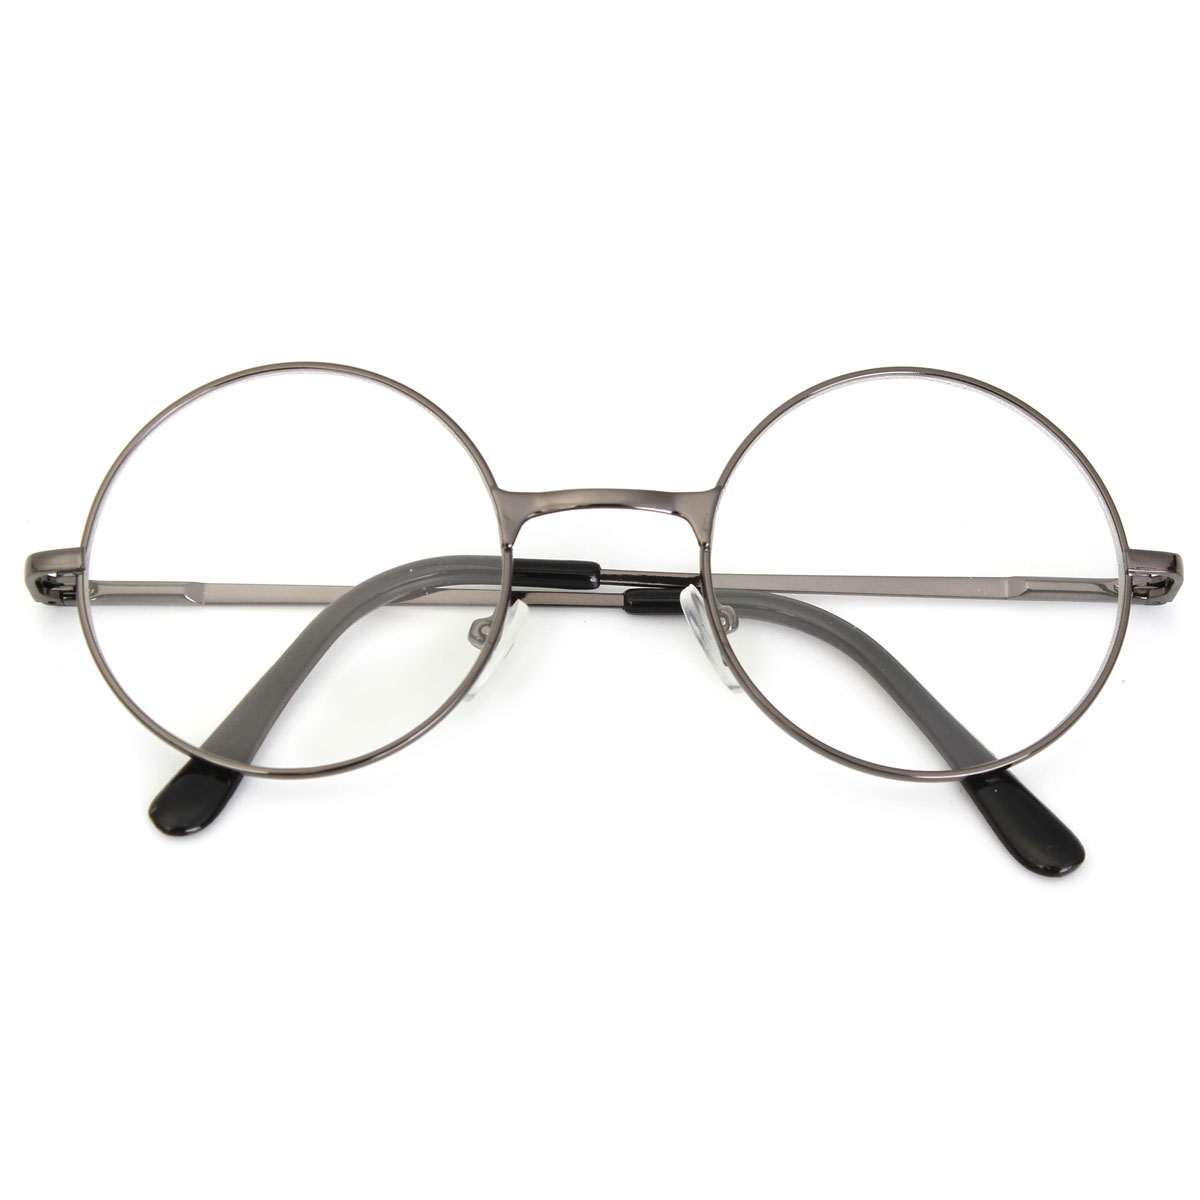 419de3e9a5e Half Round Reading Glasses - Bitterroot Public Library